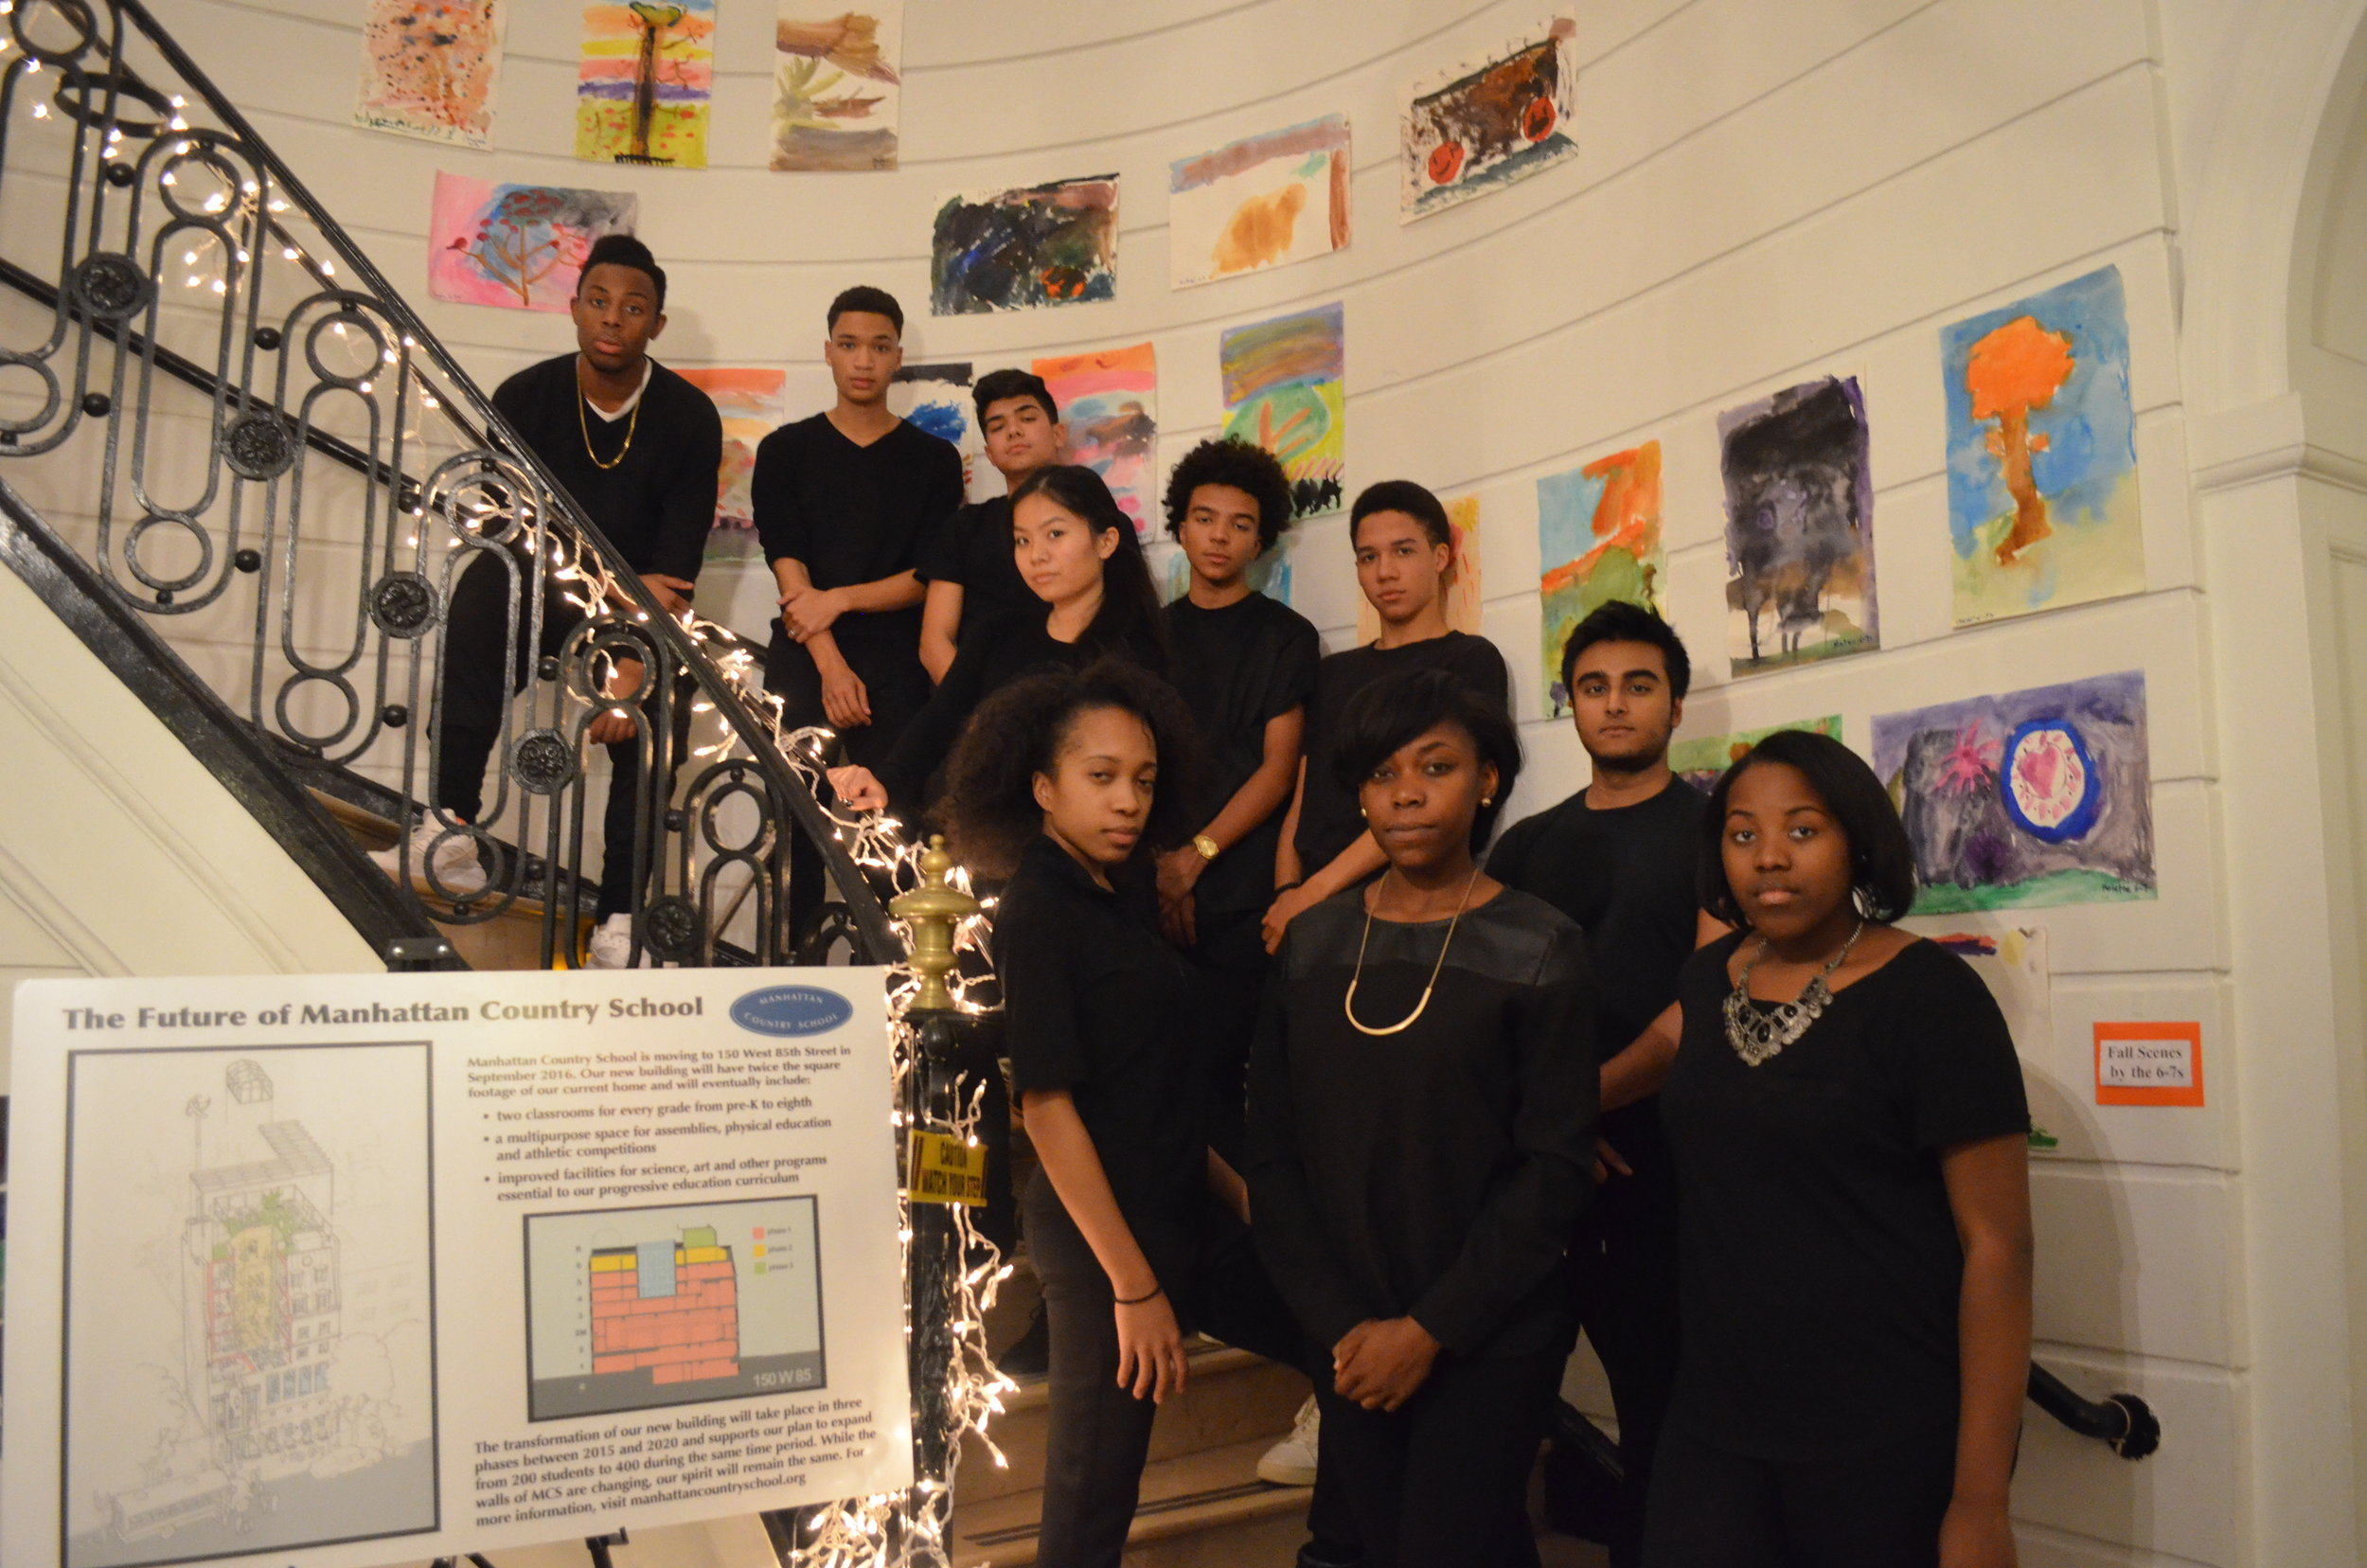 E.A.T.T.'s 2015-2016 Cast After Our 2015 Welcome to The Table Showcase At Manhattan Country School.